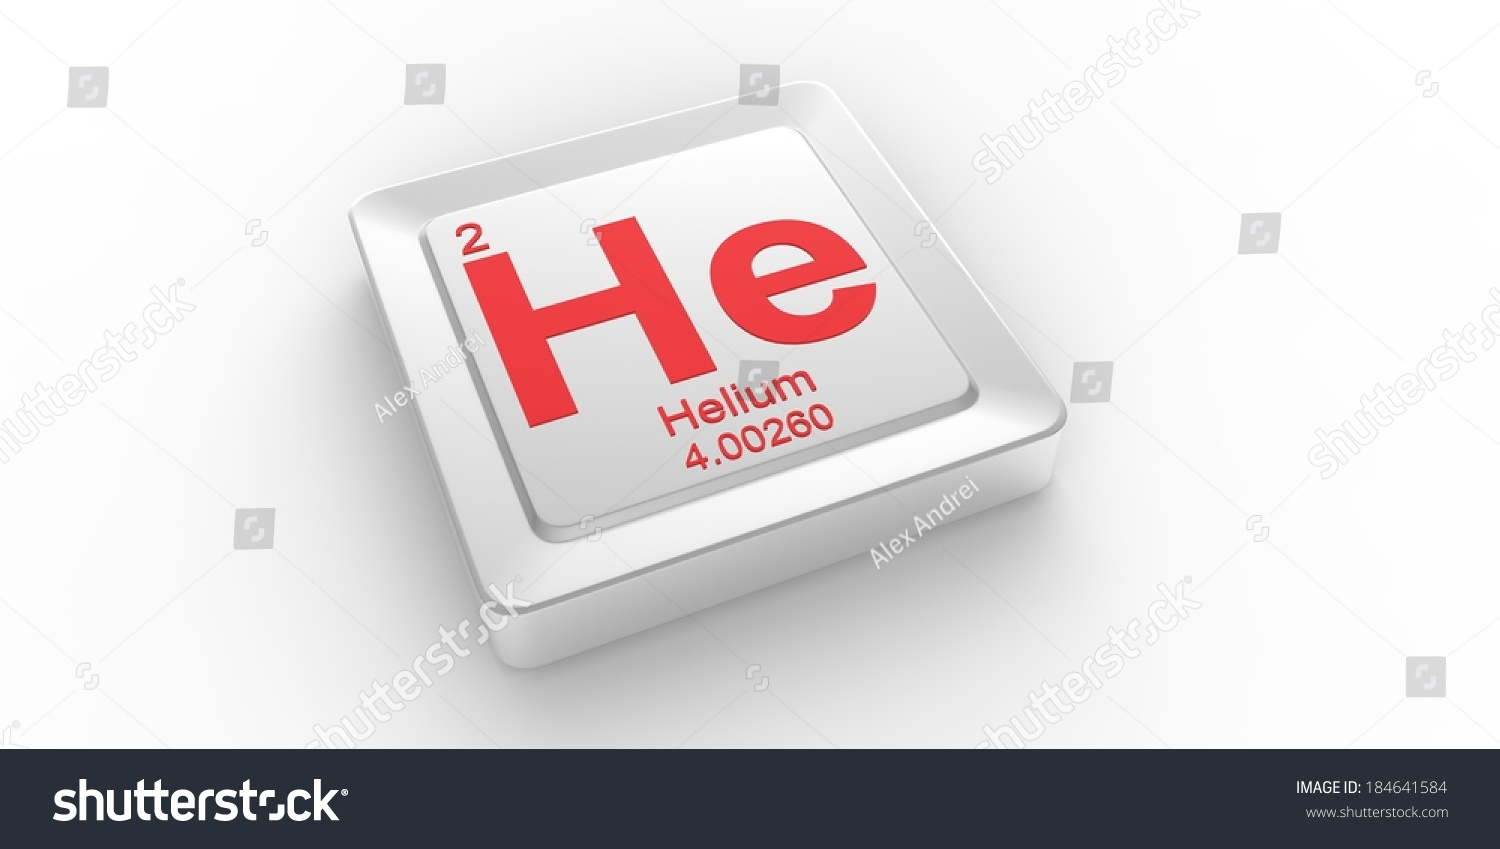 He symbol 2 material helium chemical stock illustration 184641584 he symbol 2 material for helium chemical element of the periodic table buycottarizona